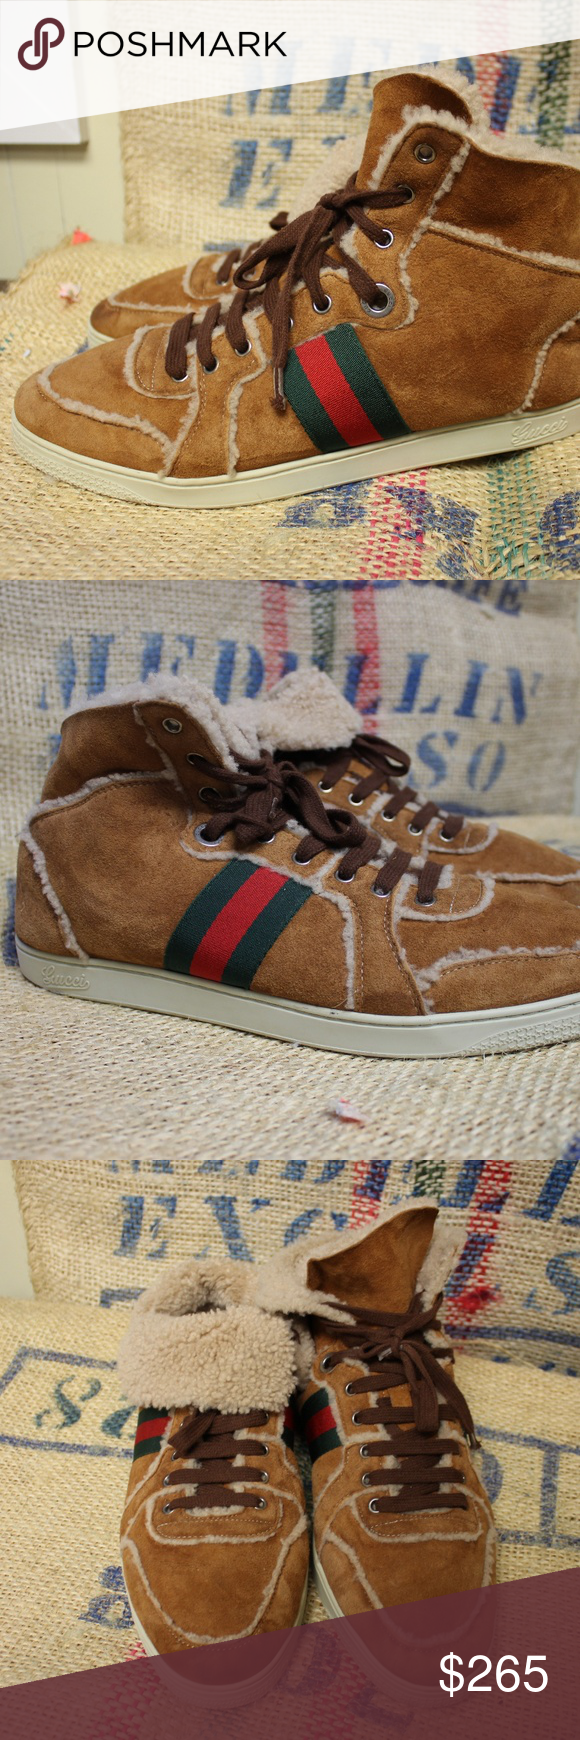 c5ec6ff22b9 RARE Gucci suede   shearling sneakers Great condition!! Slight  discoloration on toe. Can be worn up like a high top or folded down to see  the shearling.